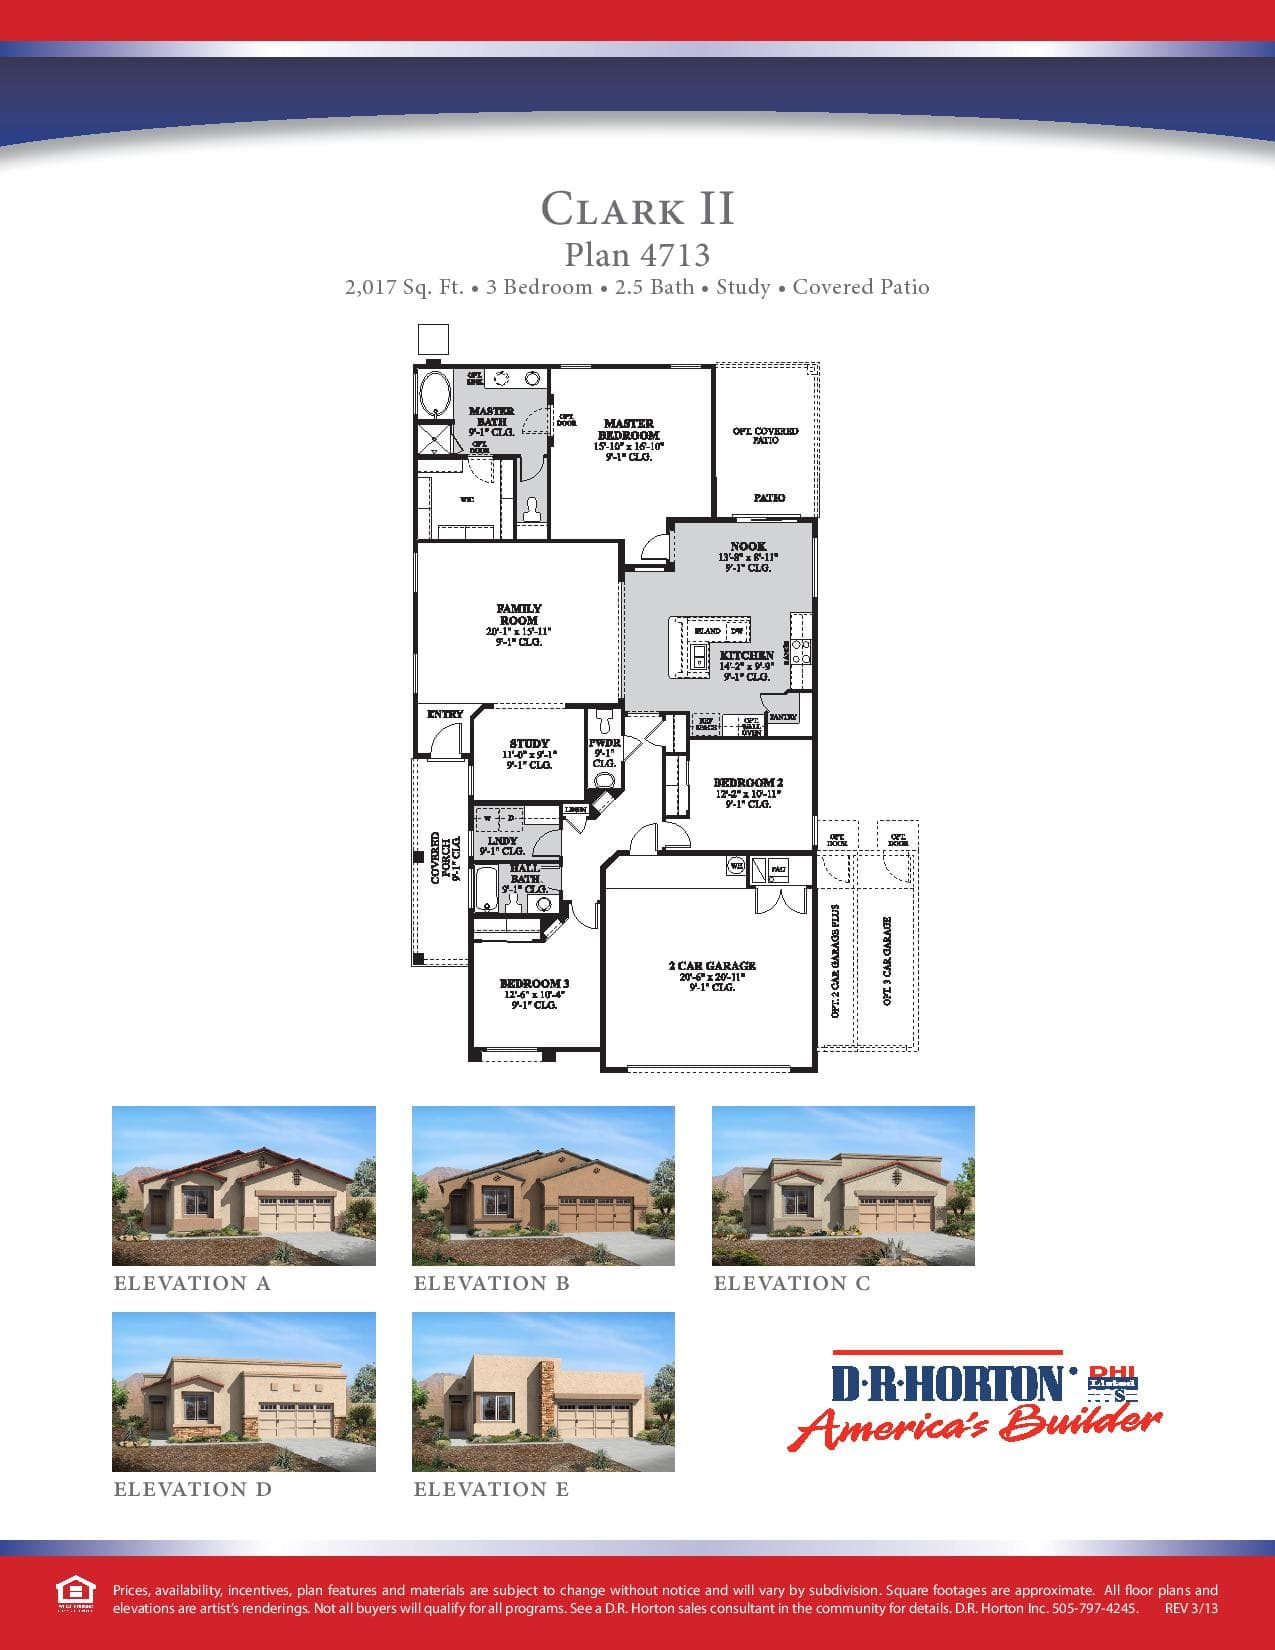 DR Horton Homes on 2006 horton homes house plans, horton house floor plans, d.r. horton homes floor plans,